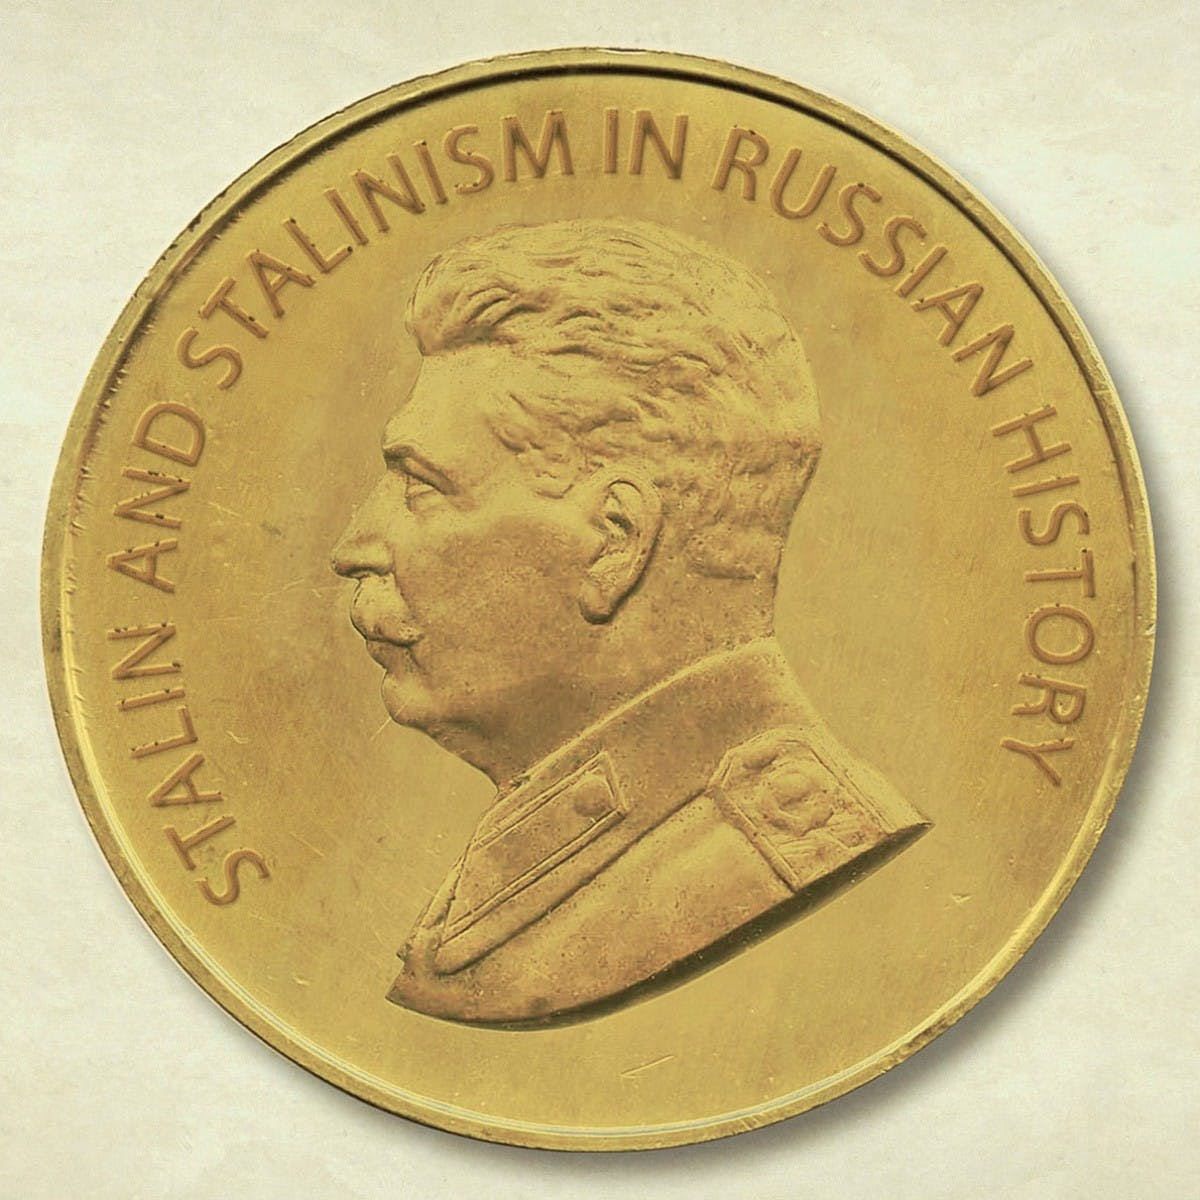 Stalin and Stalinism in Russian History